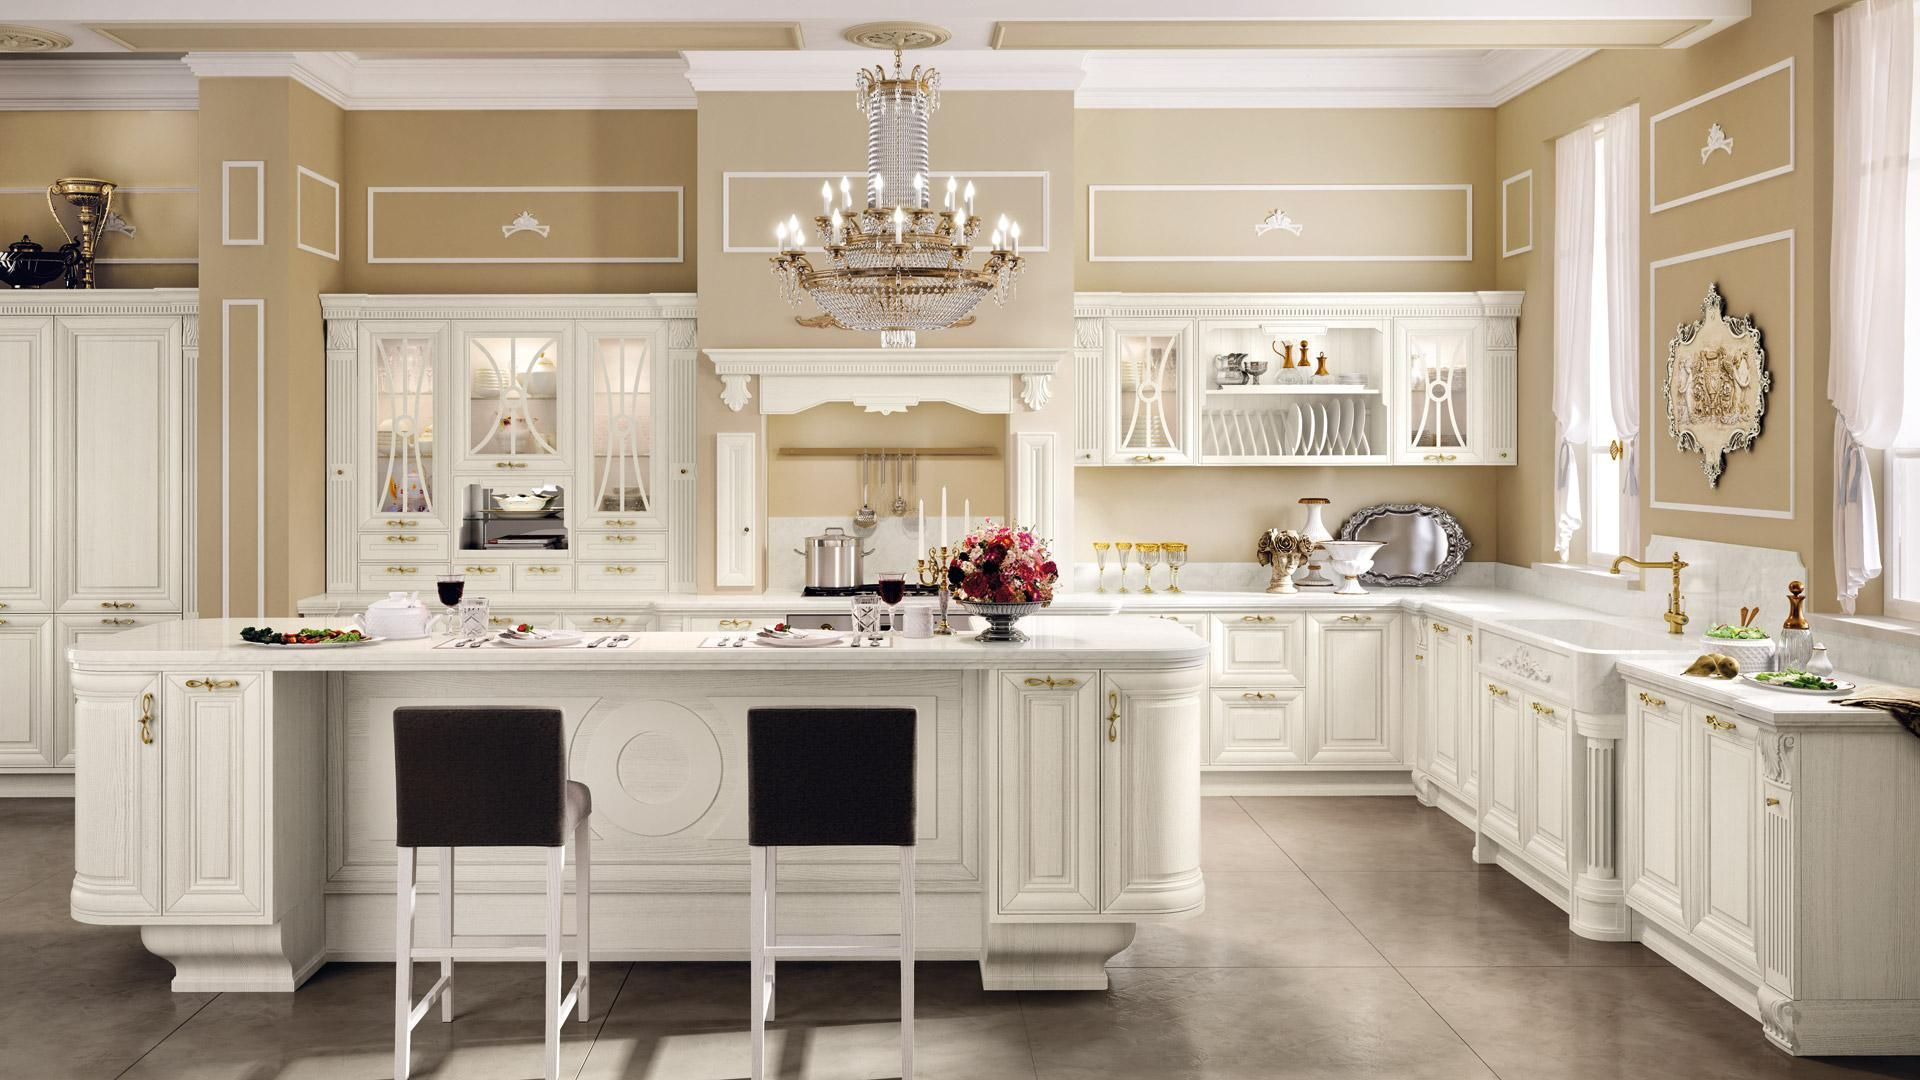 lube one of the top three #italian #kitchen producers and number ... - Cucina Febal Light La Qualita Accessibile